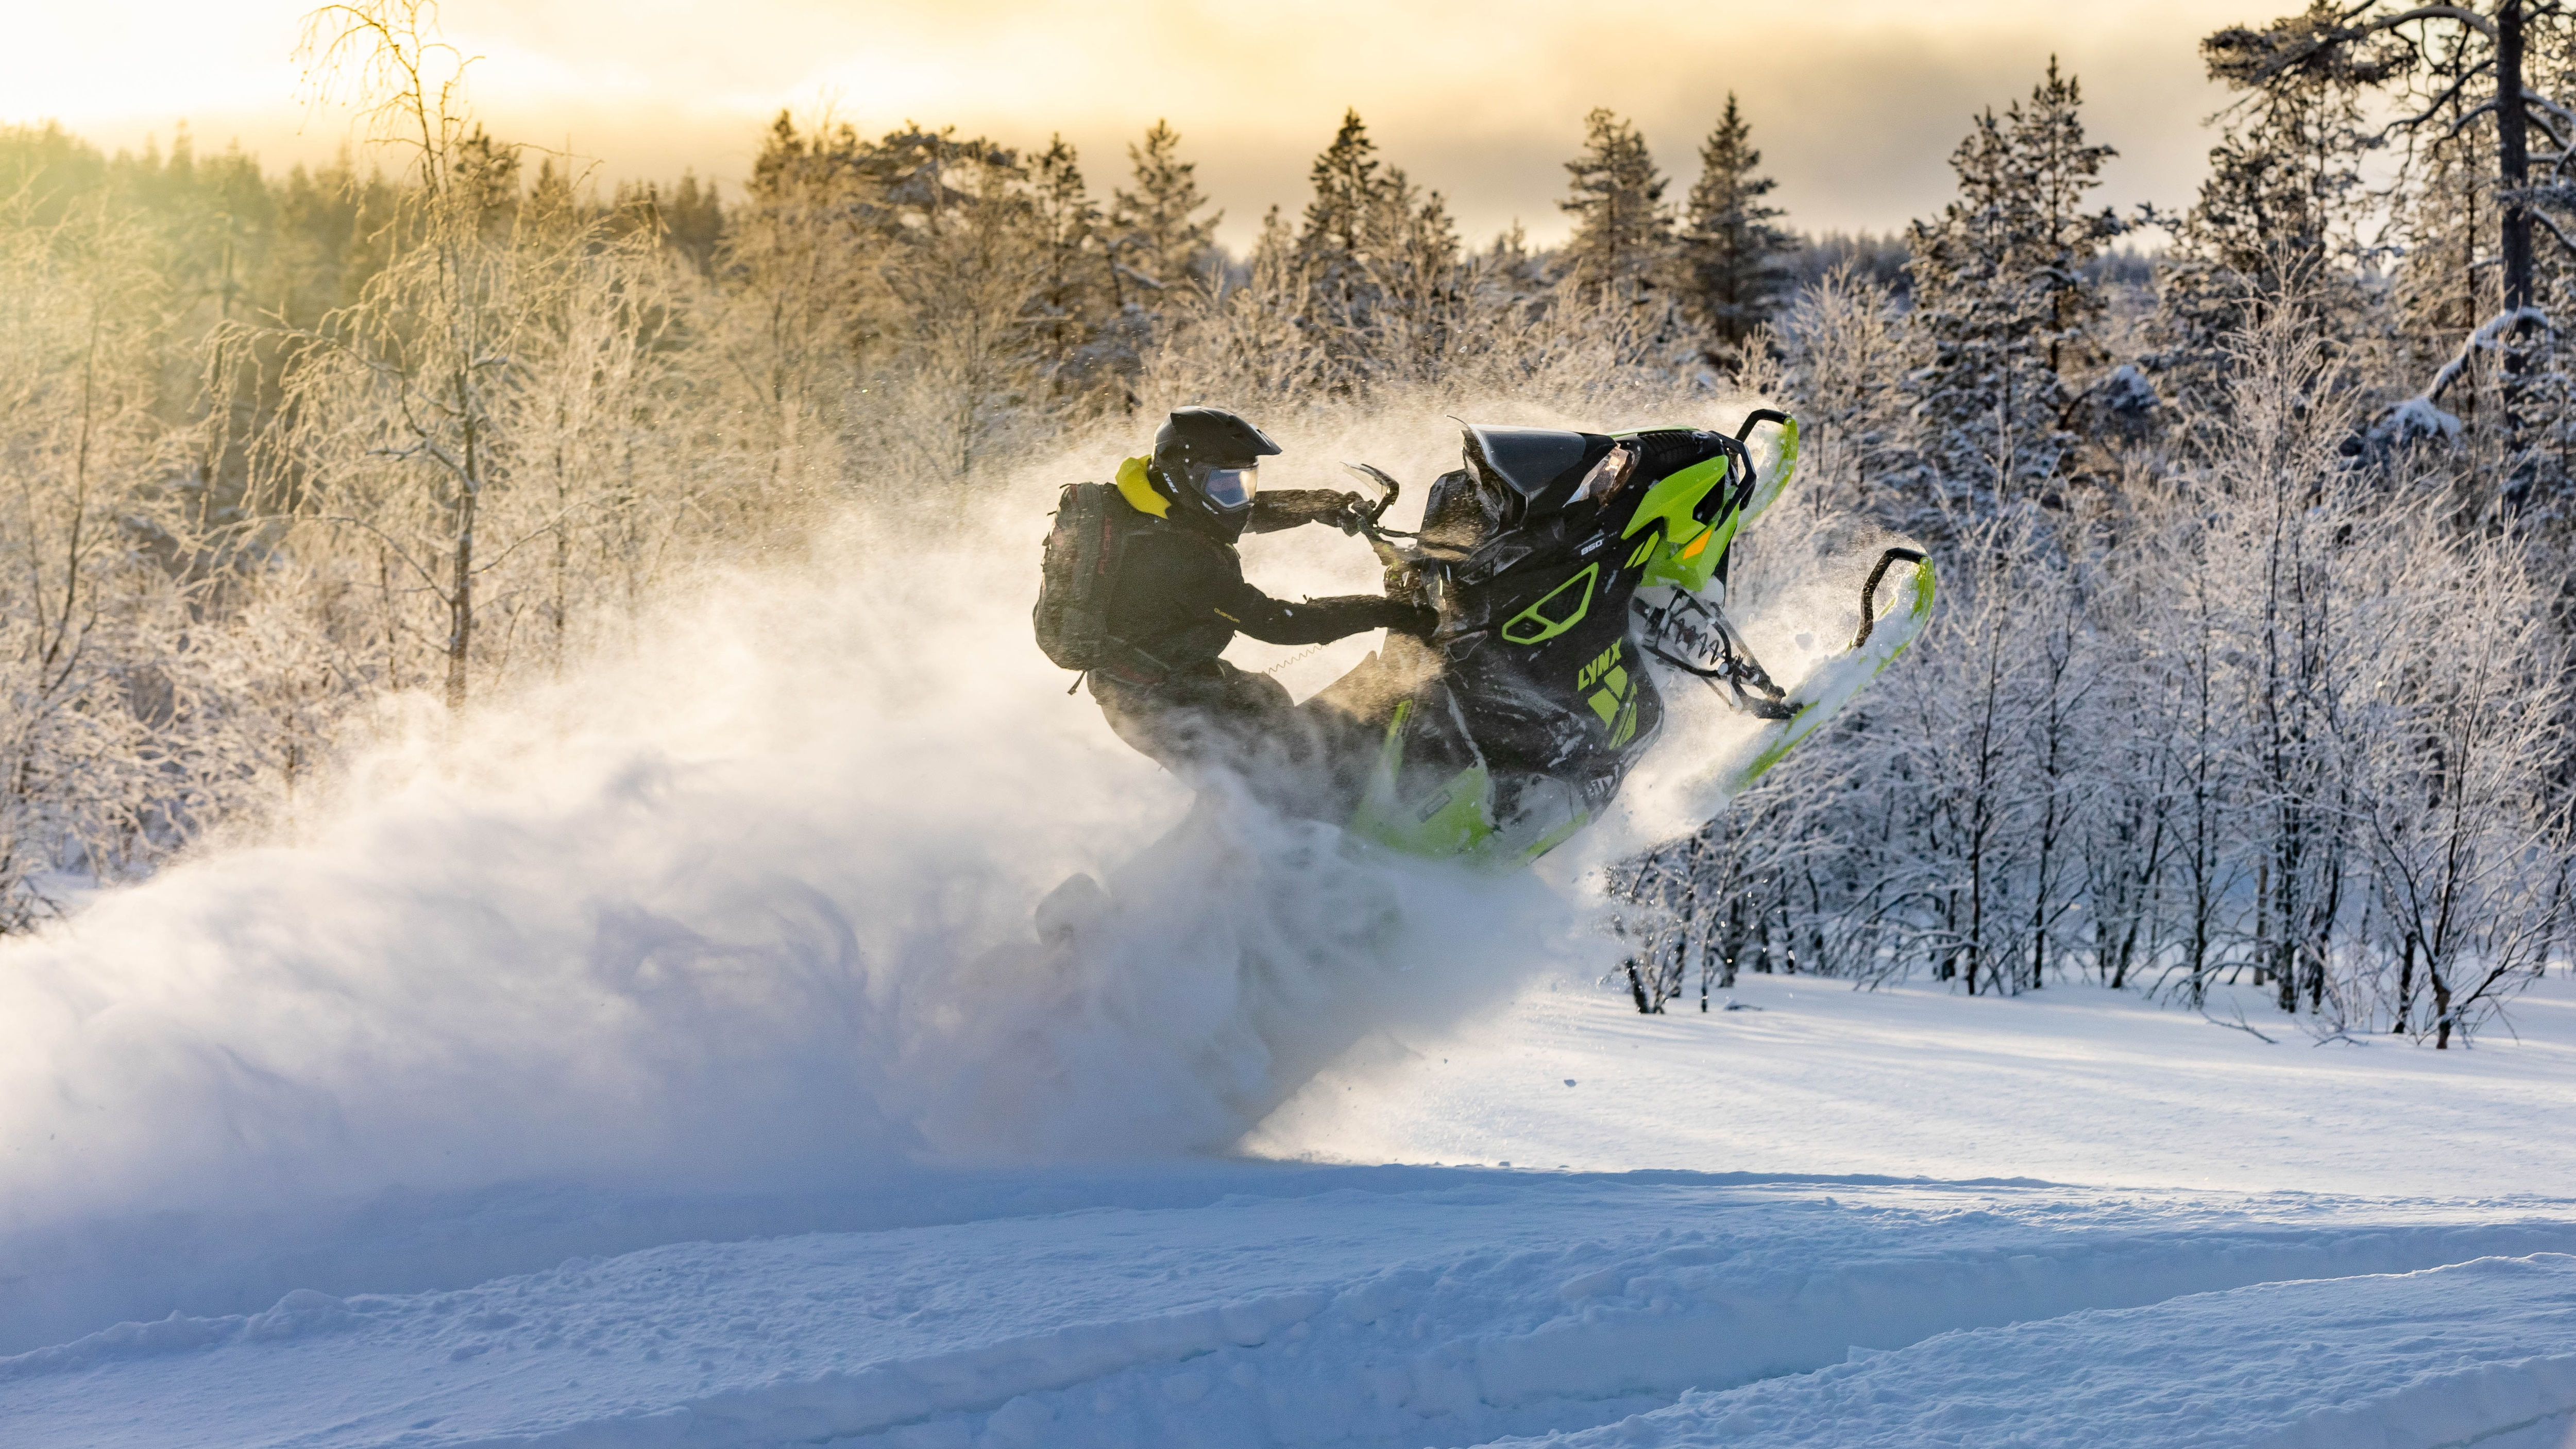 Man on a 2021 Lynx snowmobile